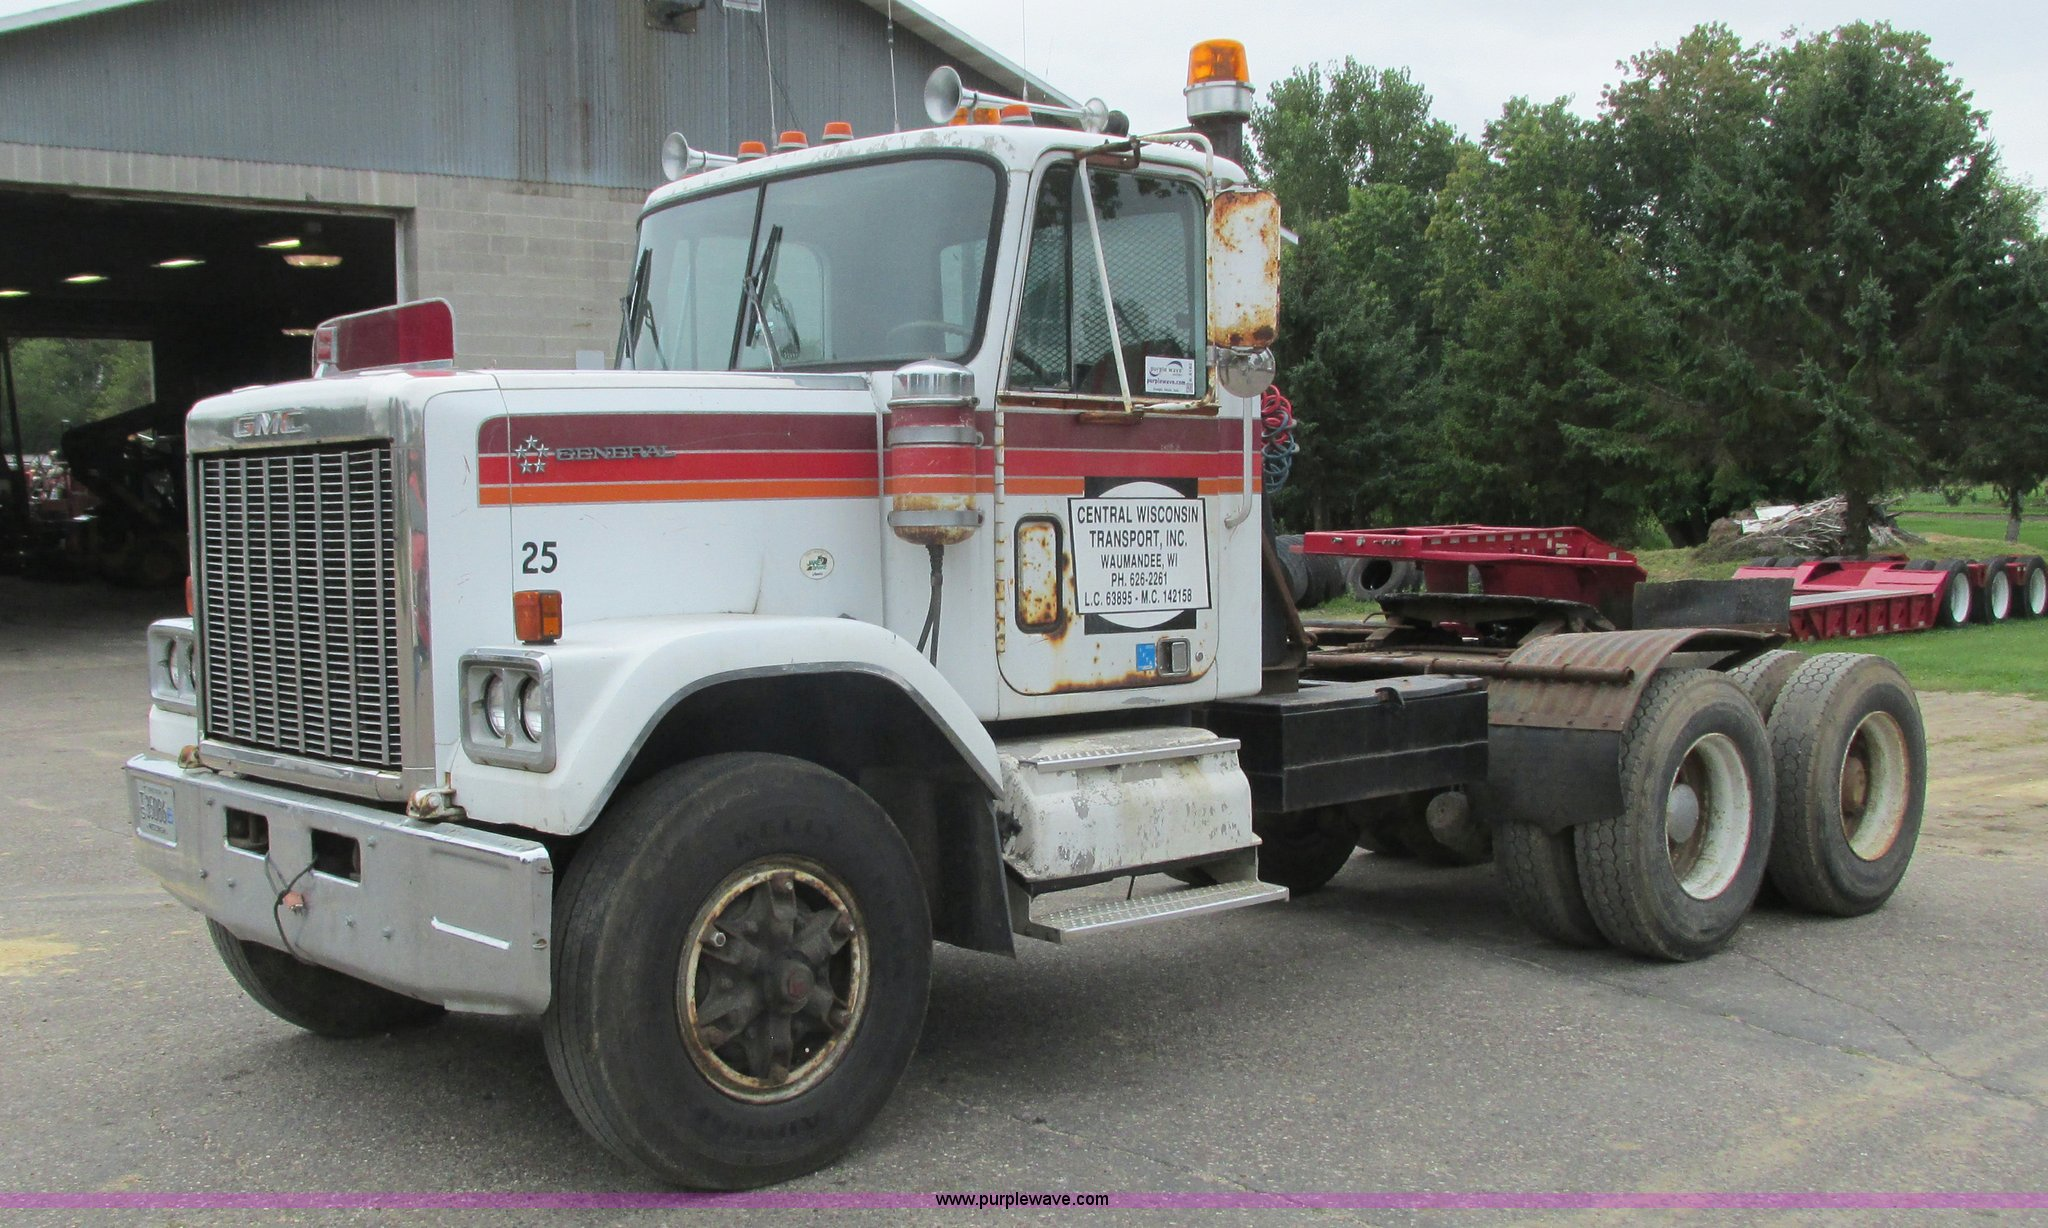 1979 Gmc General Semi Truck In Waumandee Wi Item K4182 Sold